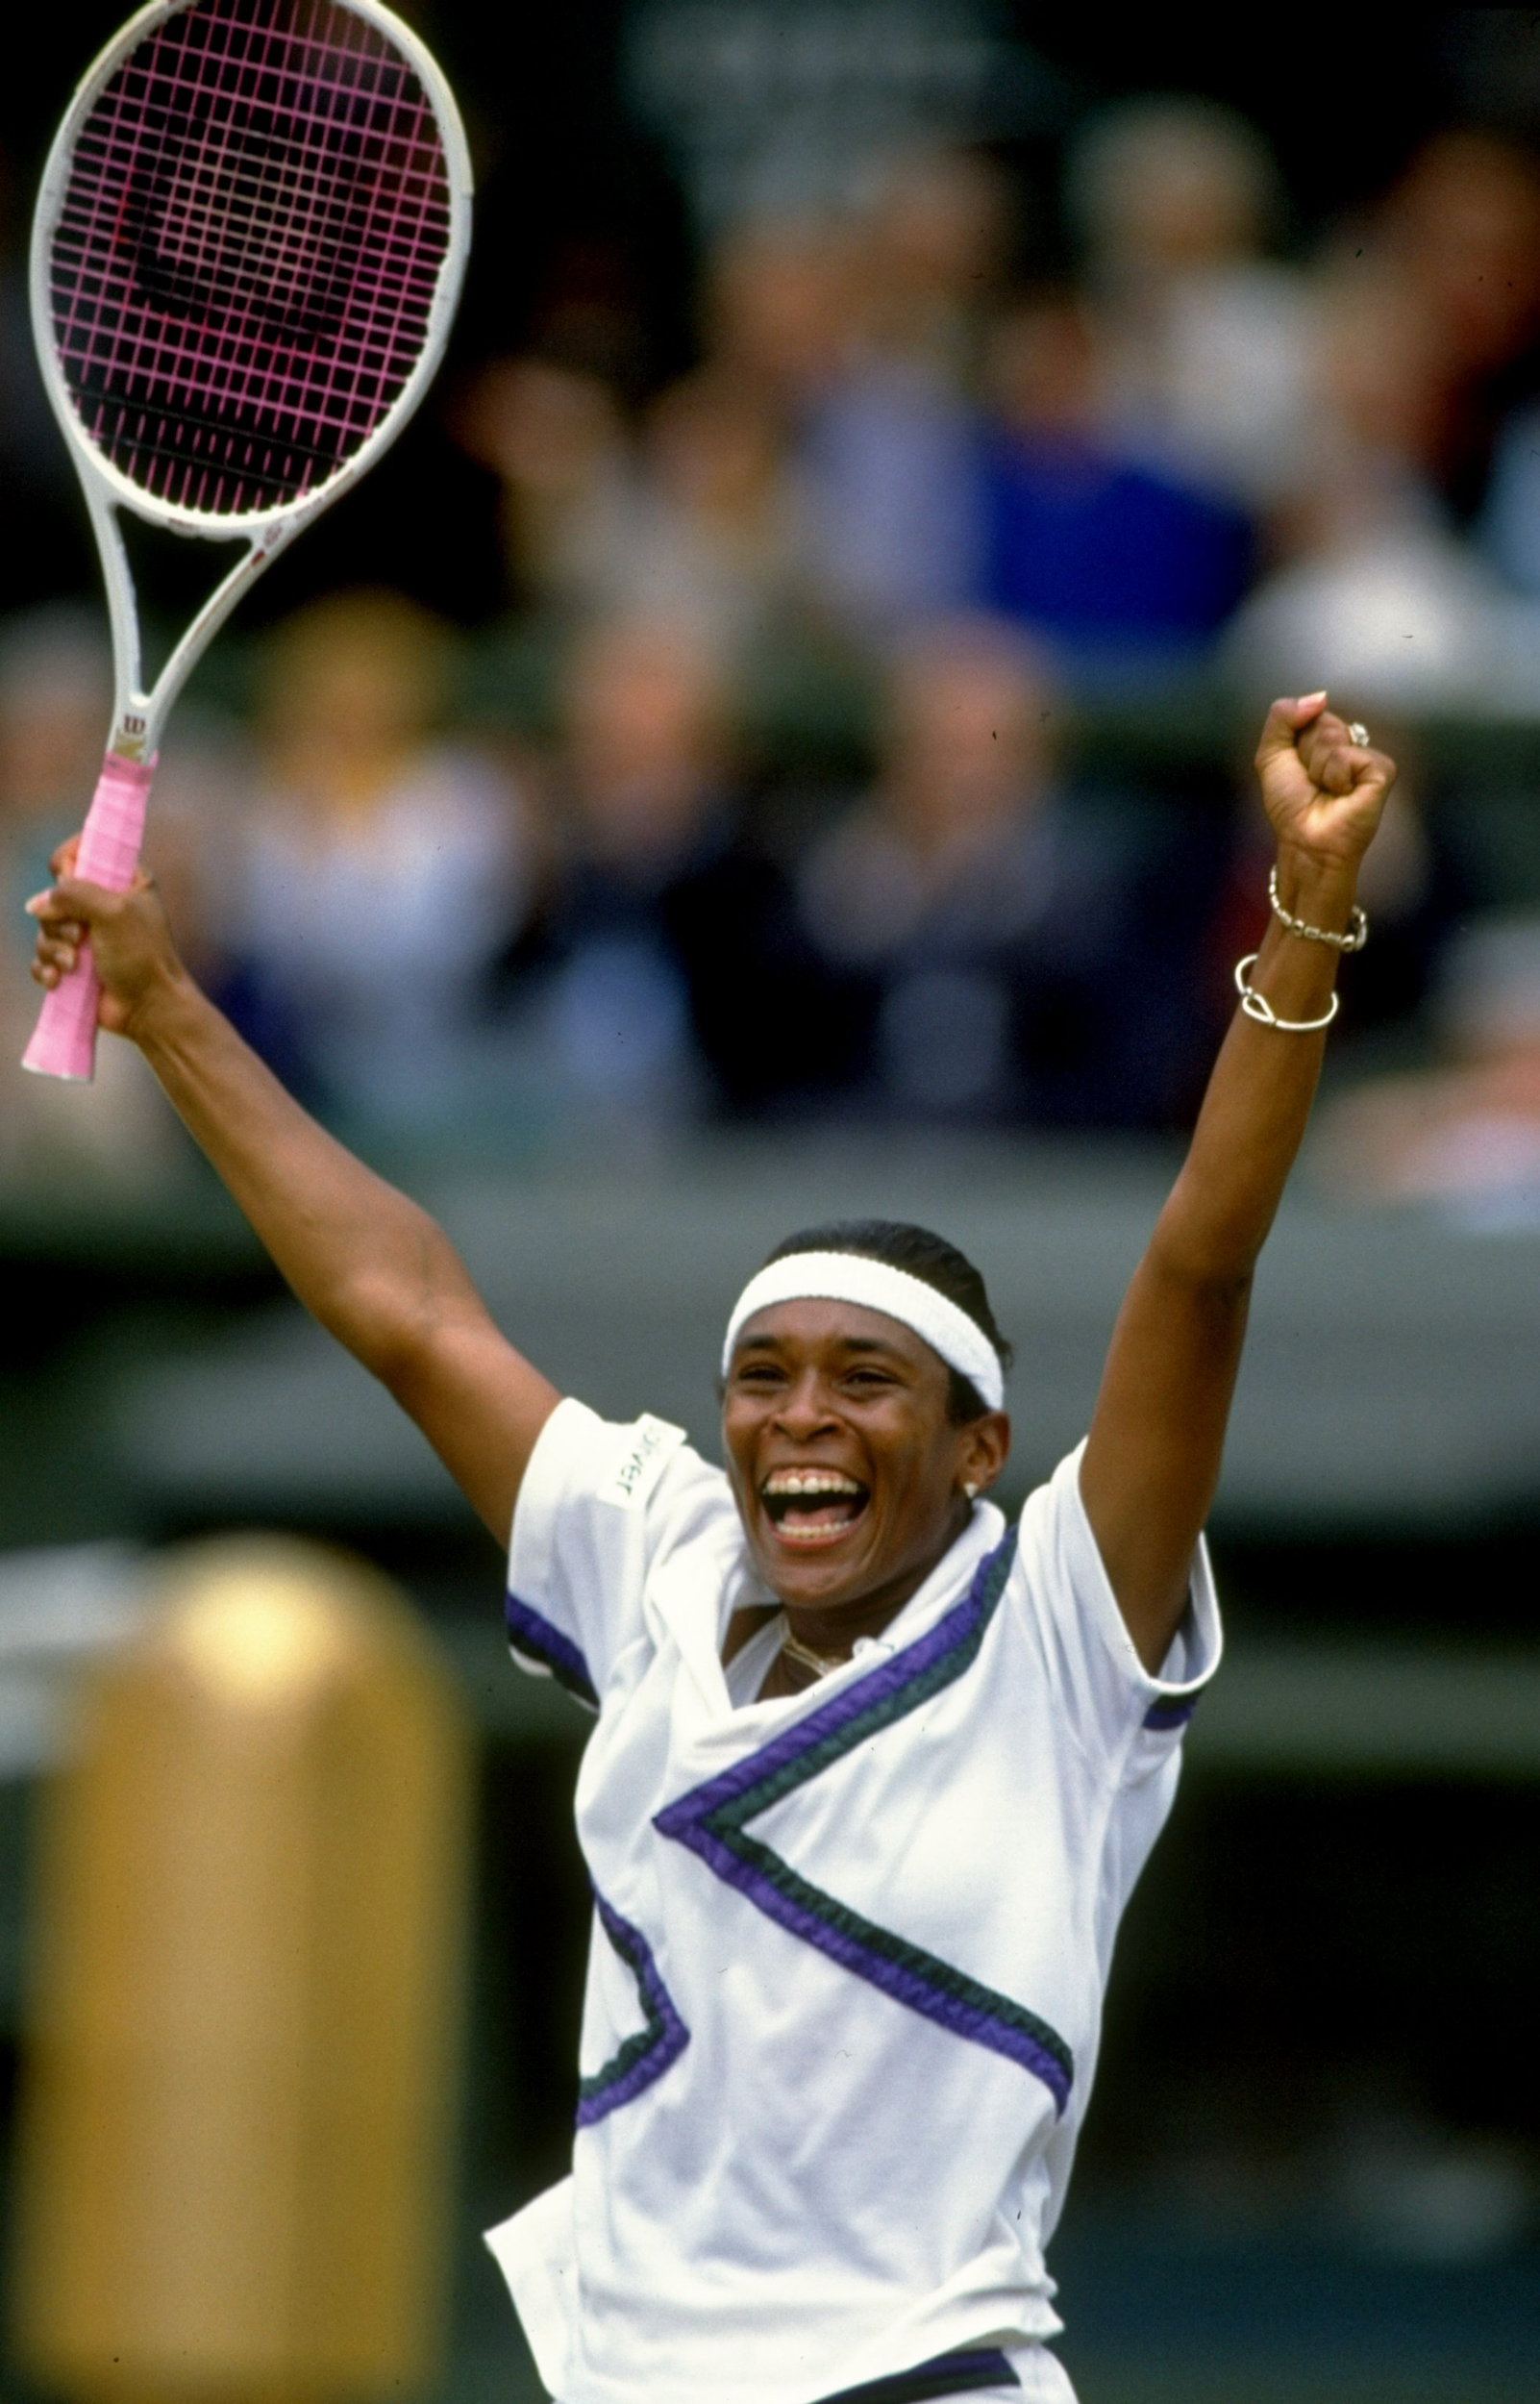 The day Zina Garrison dethroned Steffi Graf